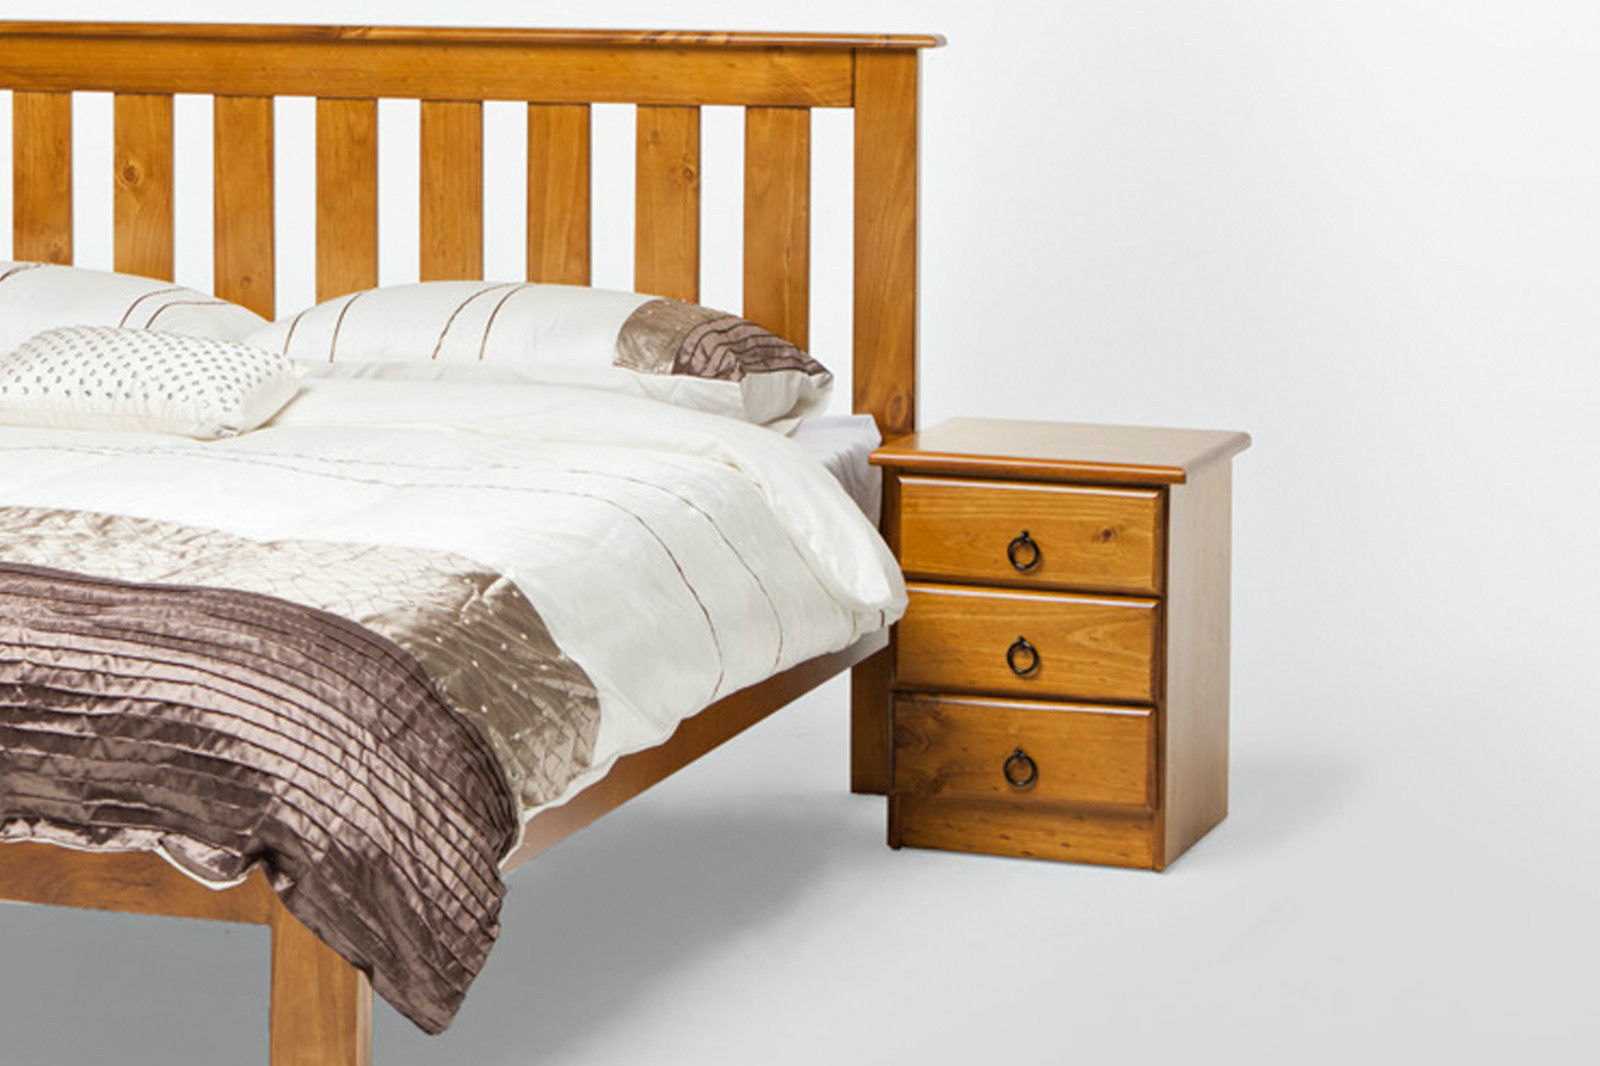 Platform Bed Bed Frame Midcentury Modern Bed Walnut Bed